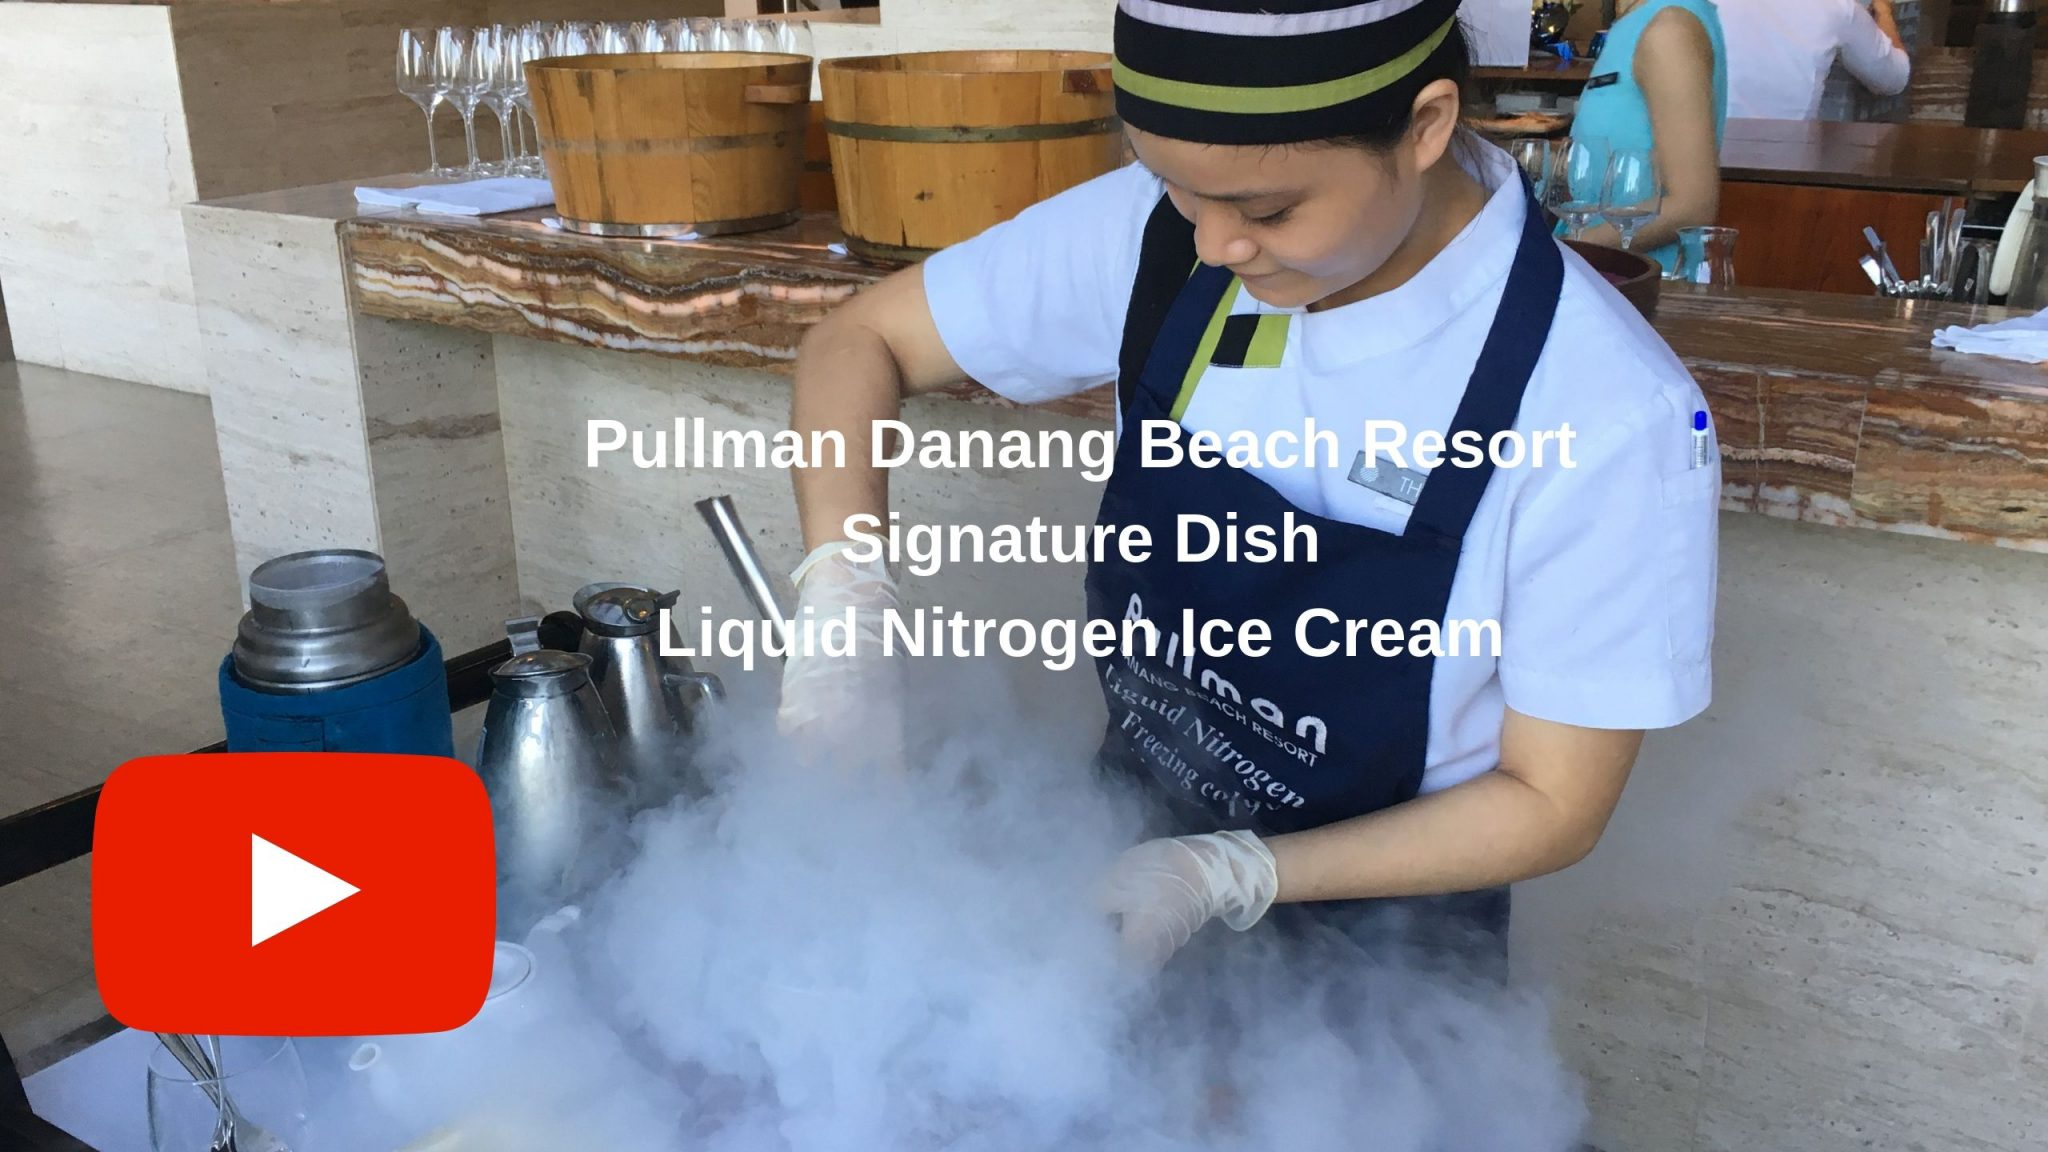 Making Liquid Nitrogen Ice Cream at Pullman Danang Beach Resort